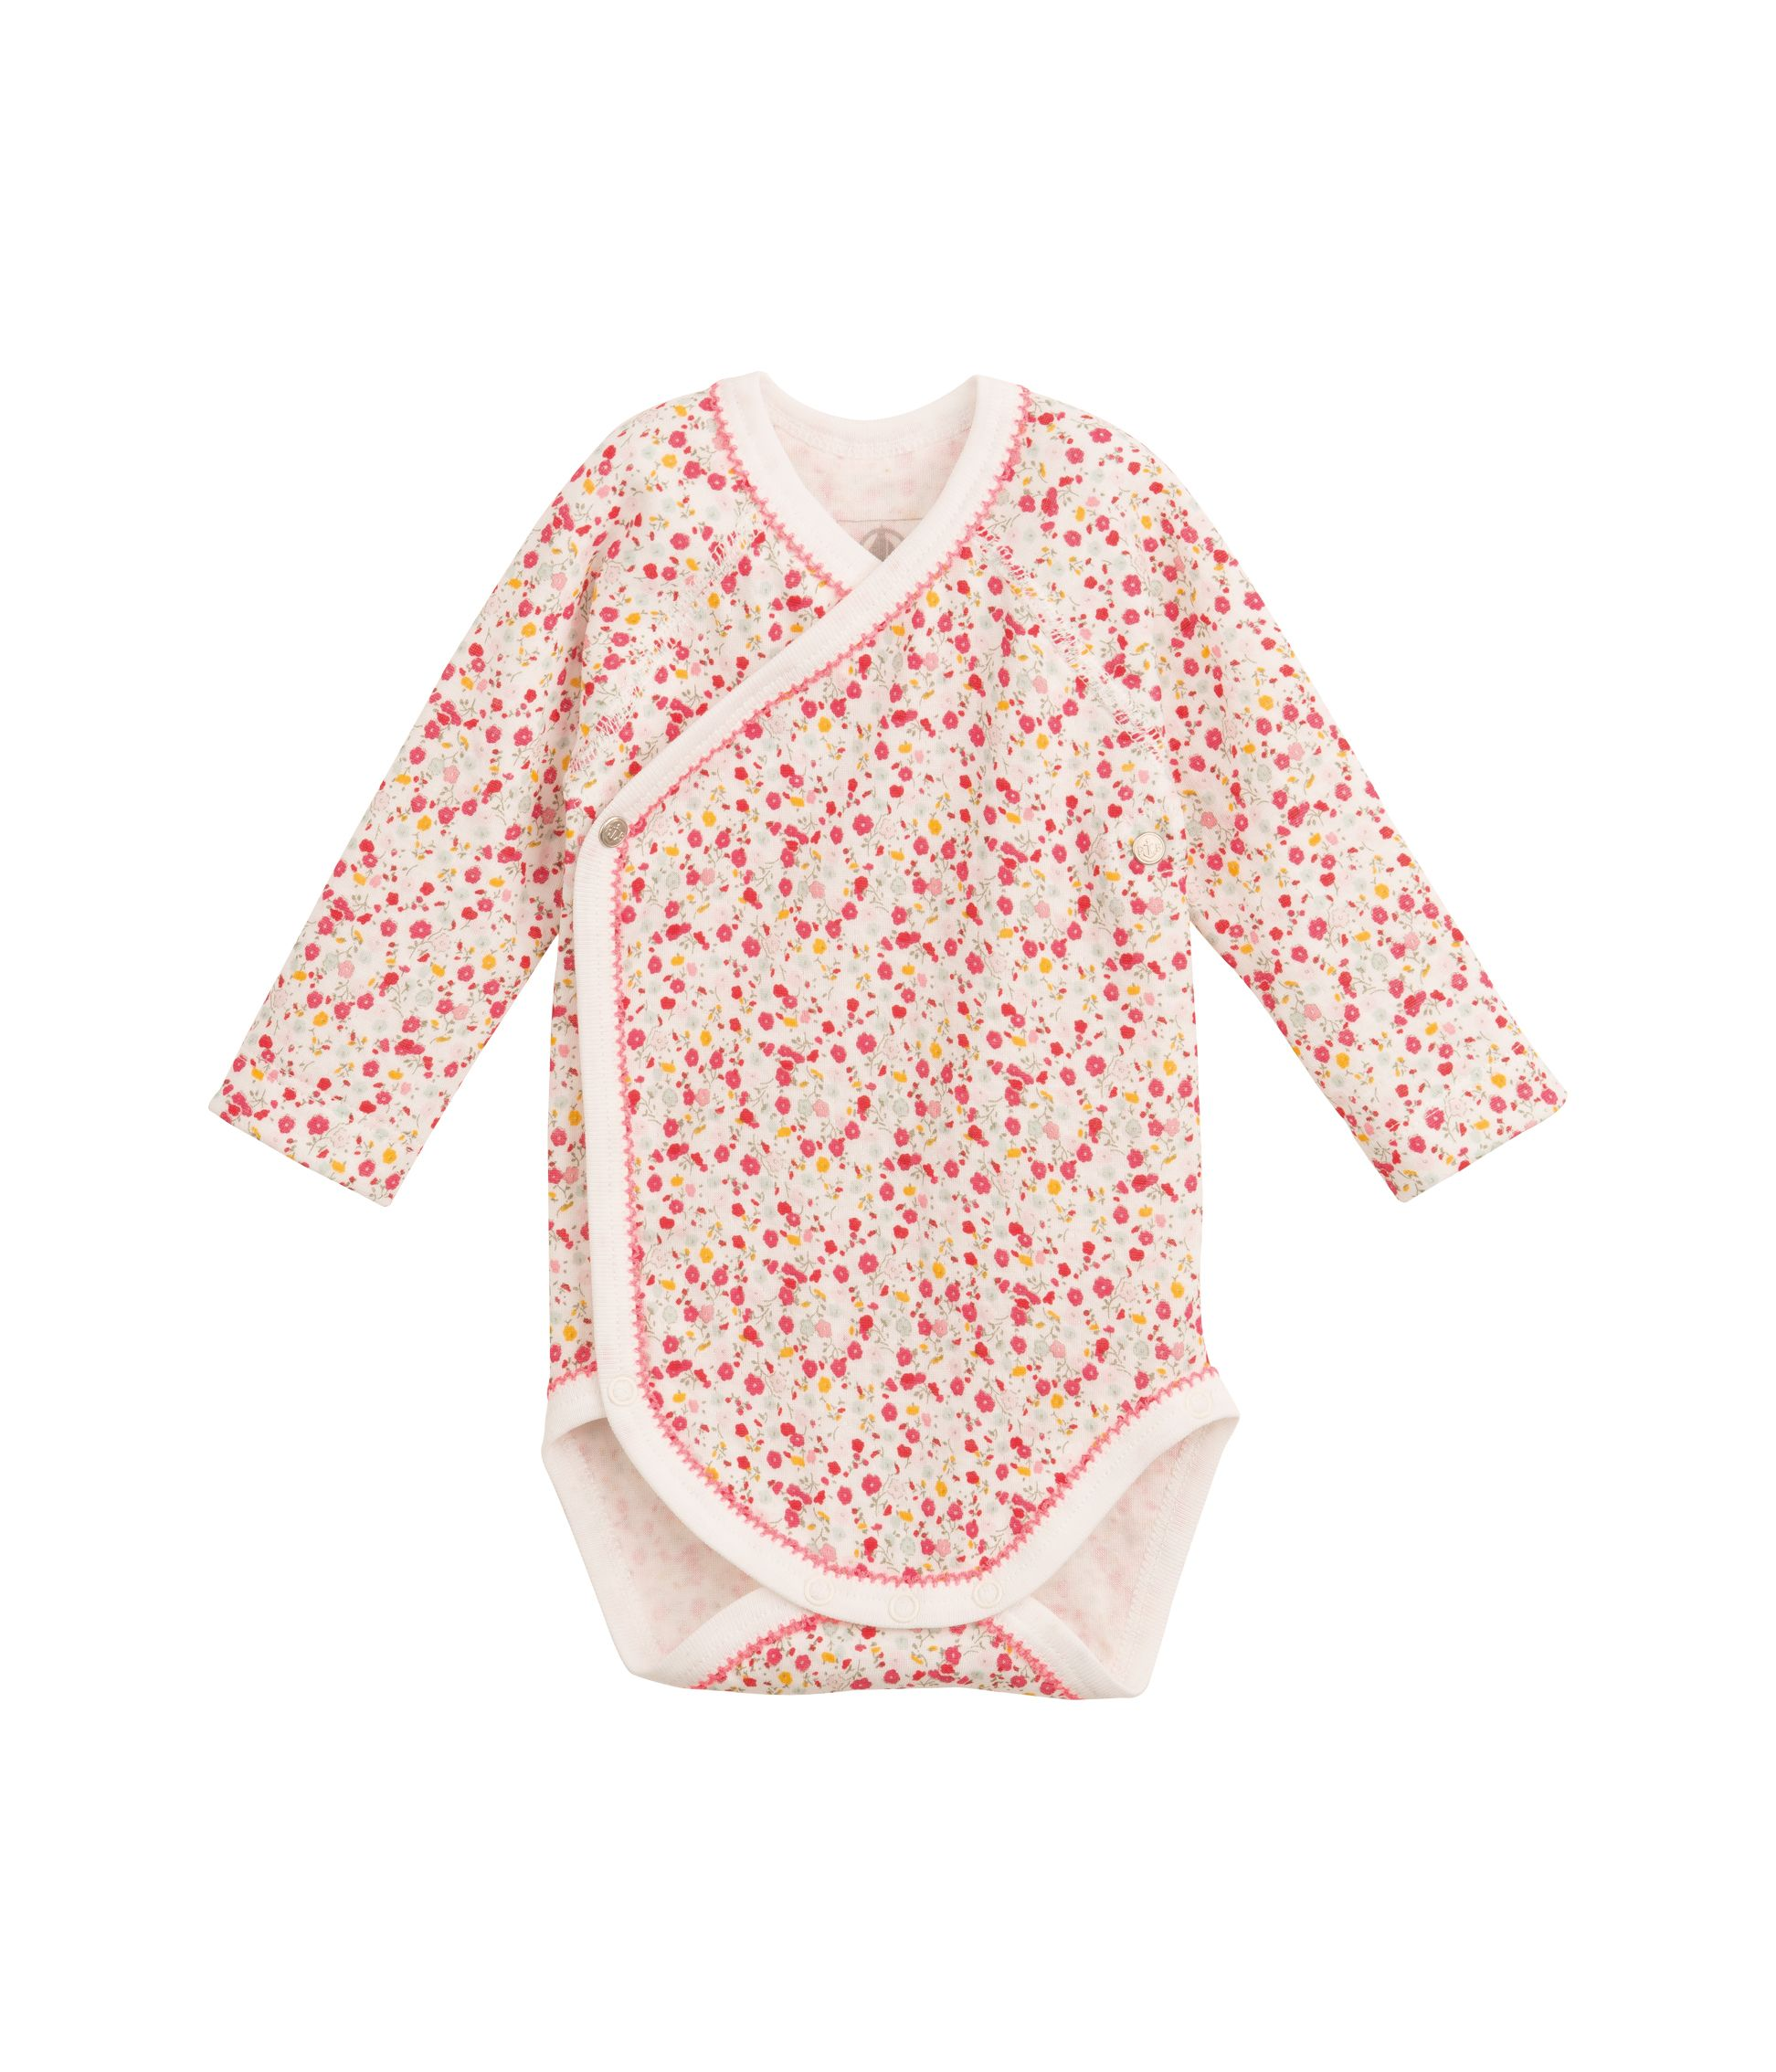 Newborn baby long-sleeved bodysuit